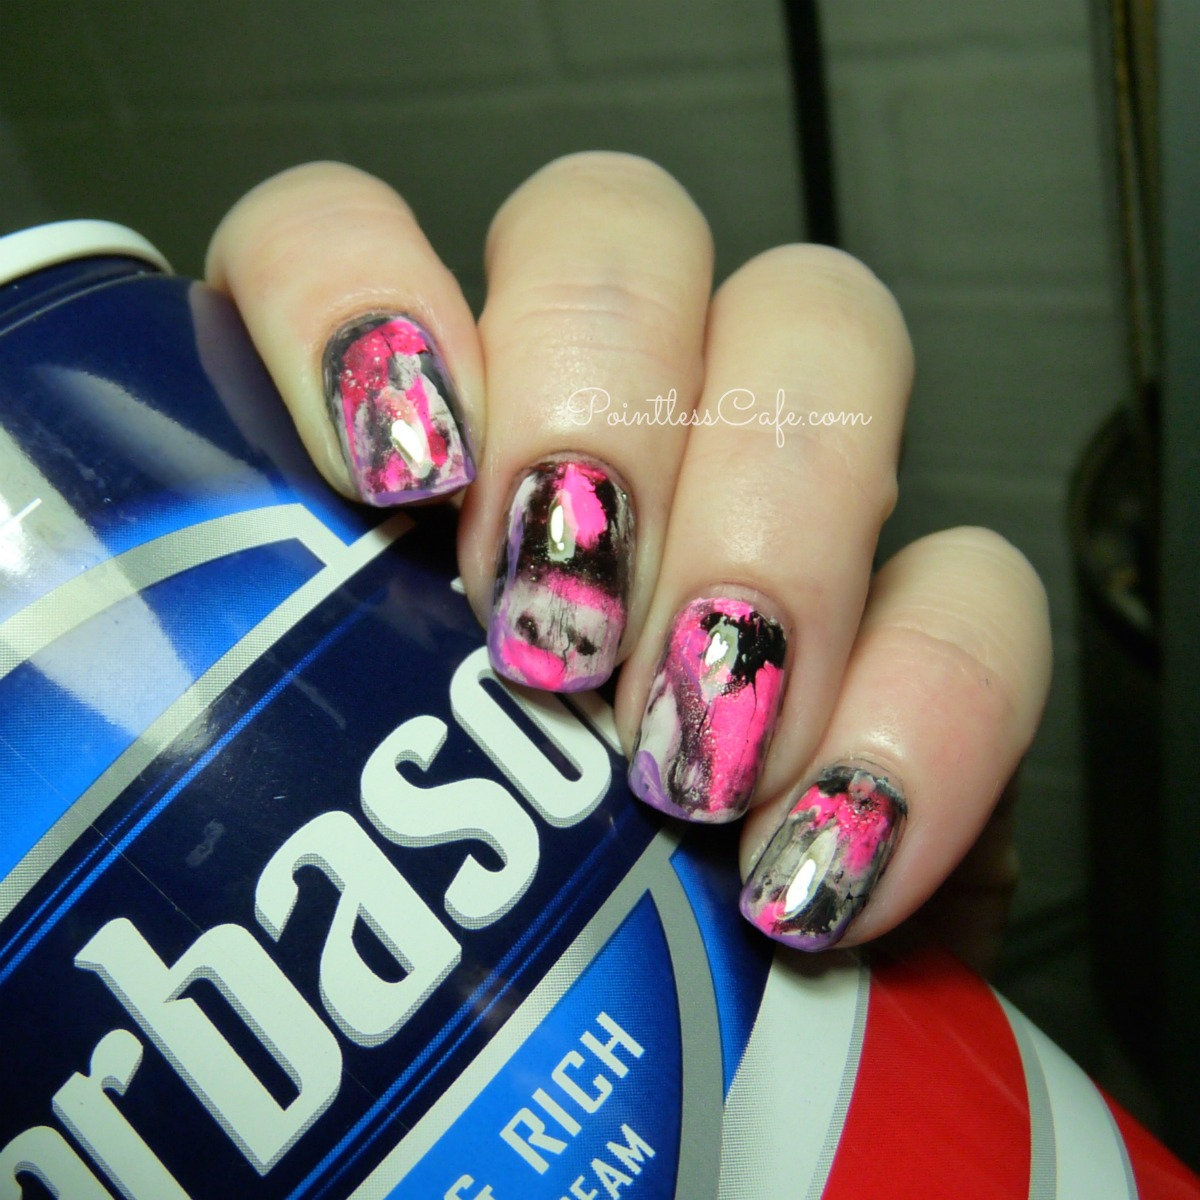 Shaving cream marble nail art pointless cafe shaving cream marble nail art prinsesfo Gallery